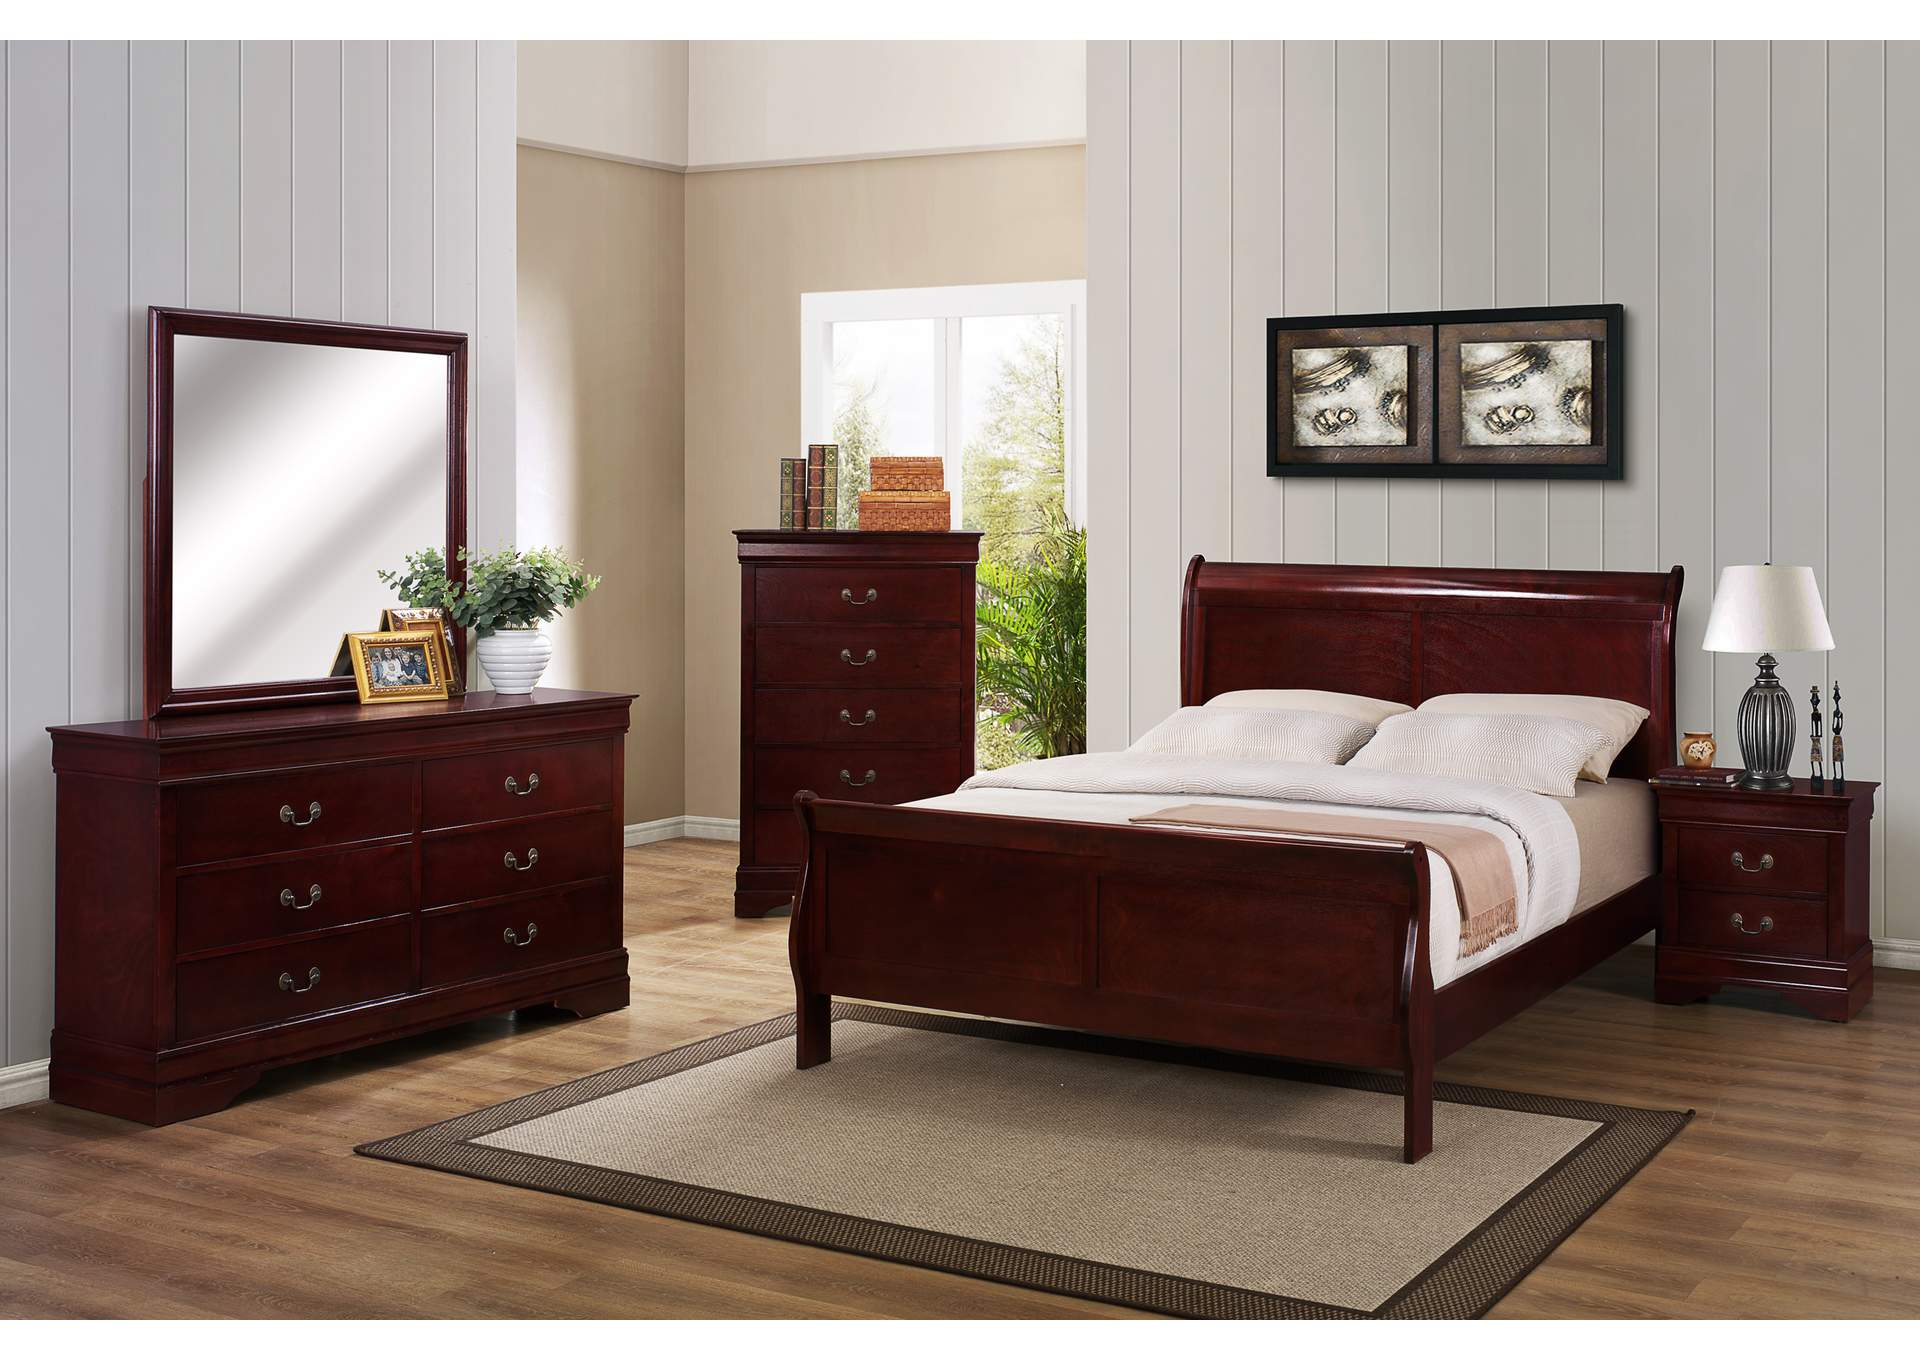 Louis Philip Cherry Full Sleigh Bed w/6 Drawer Dresser, Mirror and Nightstand,Crown Mark